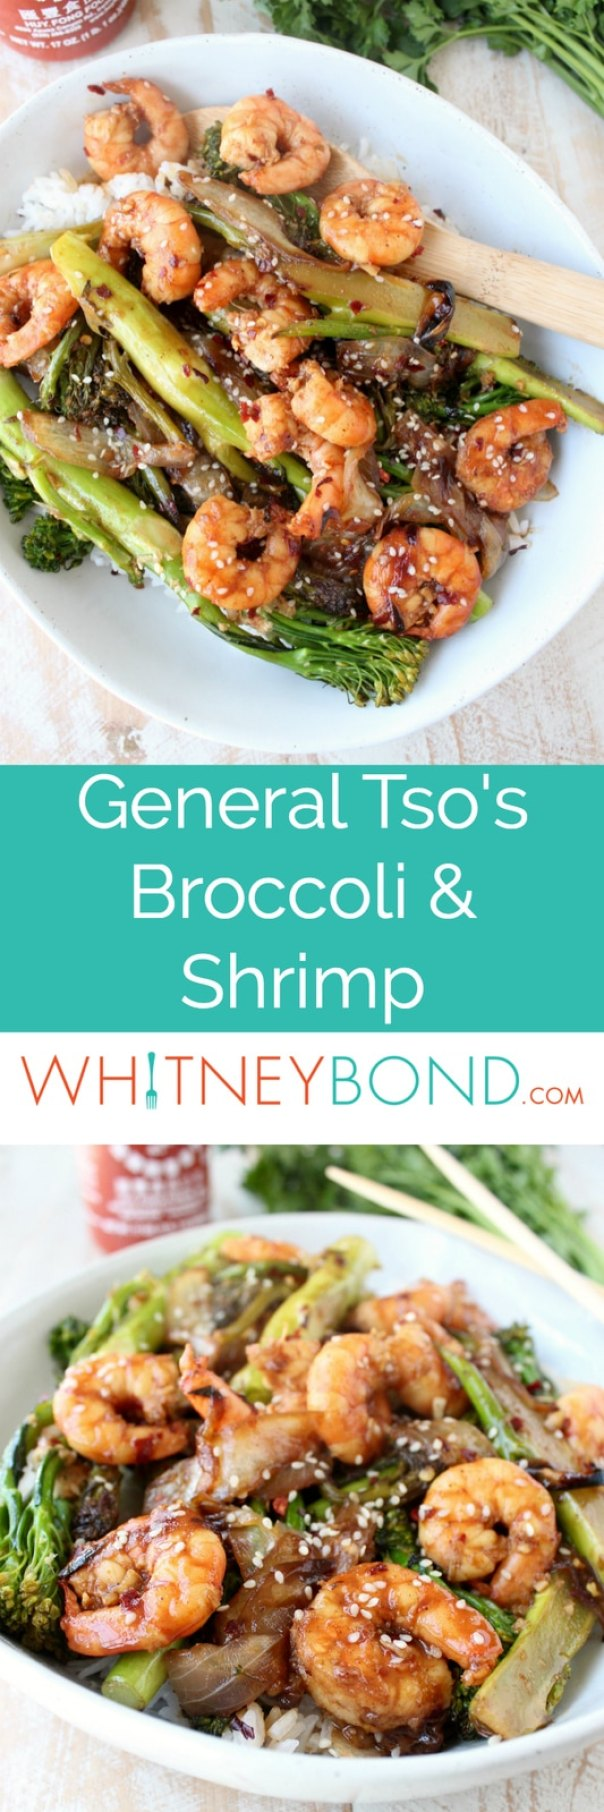 General Tso's Broccoli & Shrimp Recipe